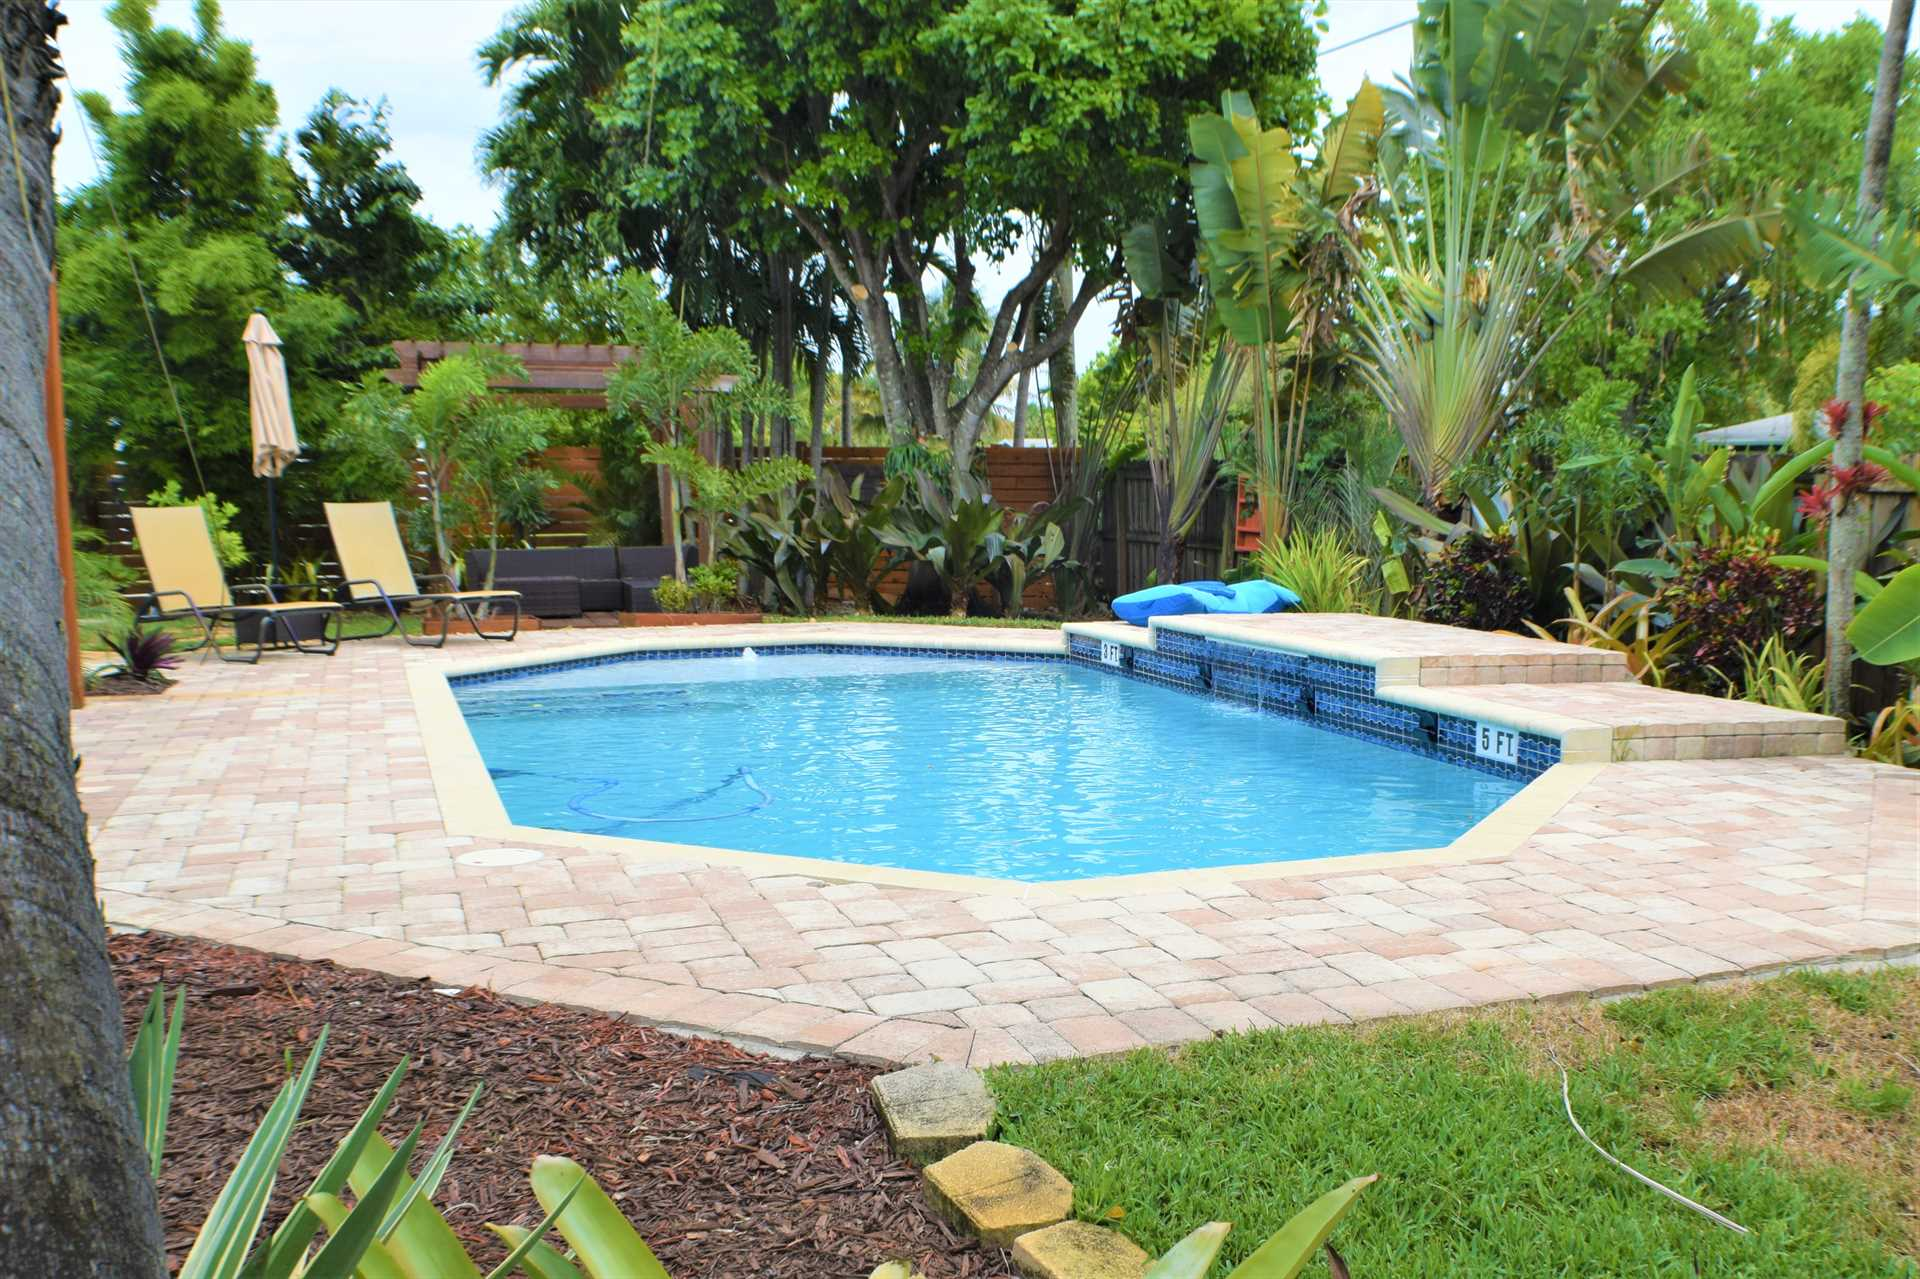 Landscaping in the pool area is breathtaking